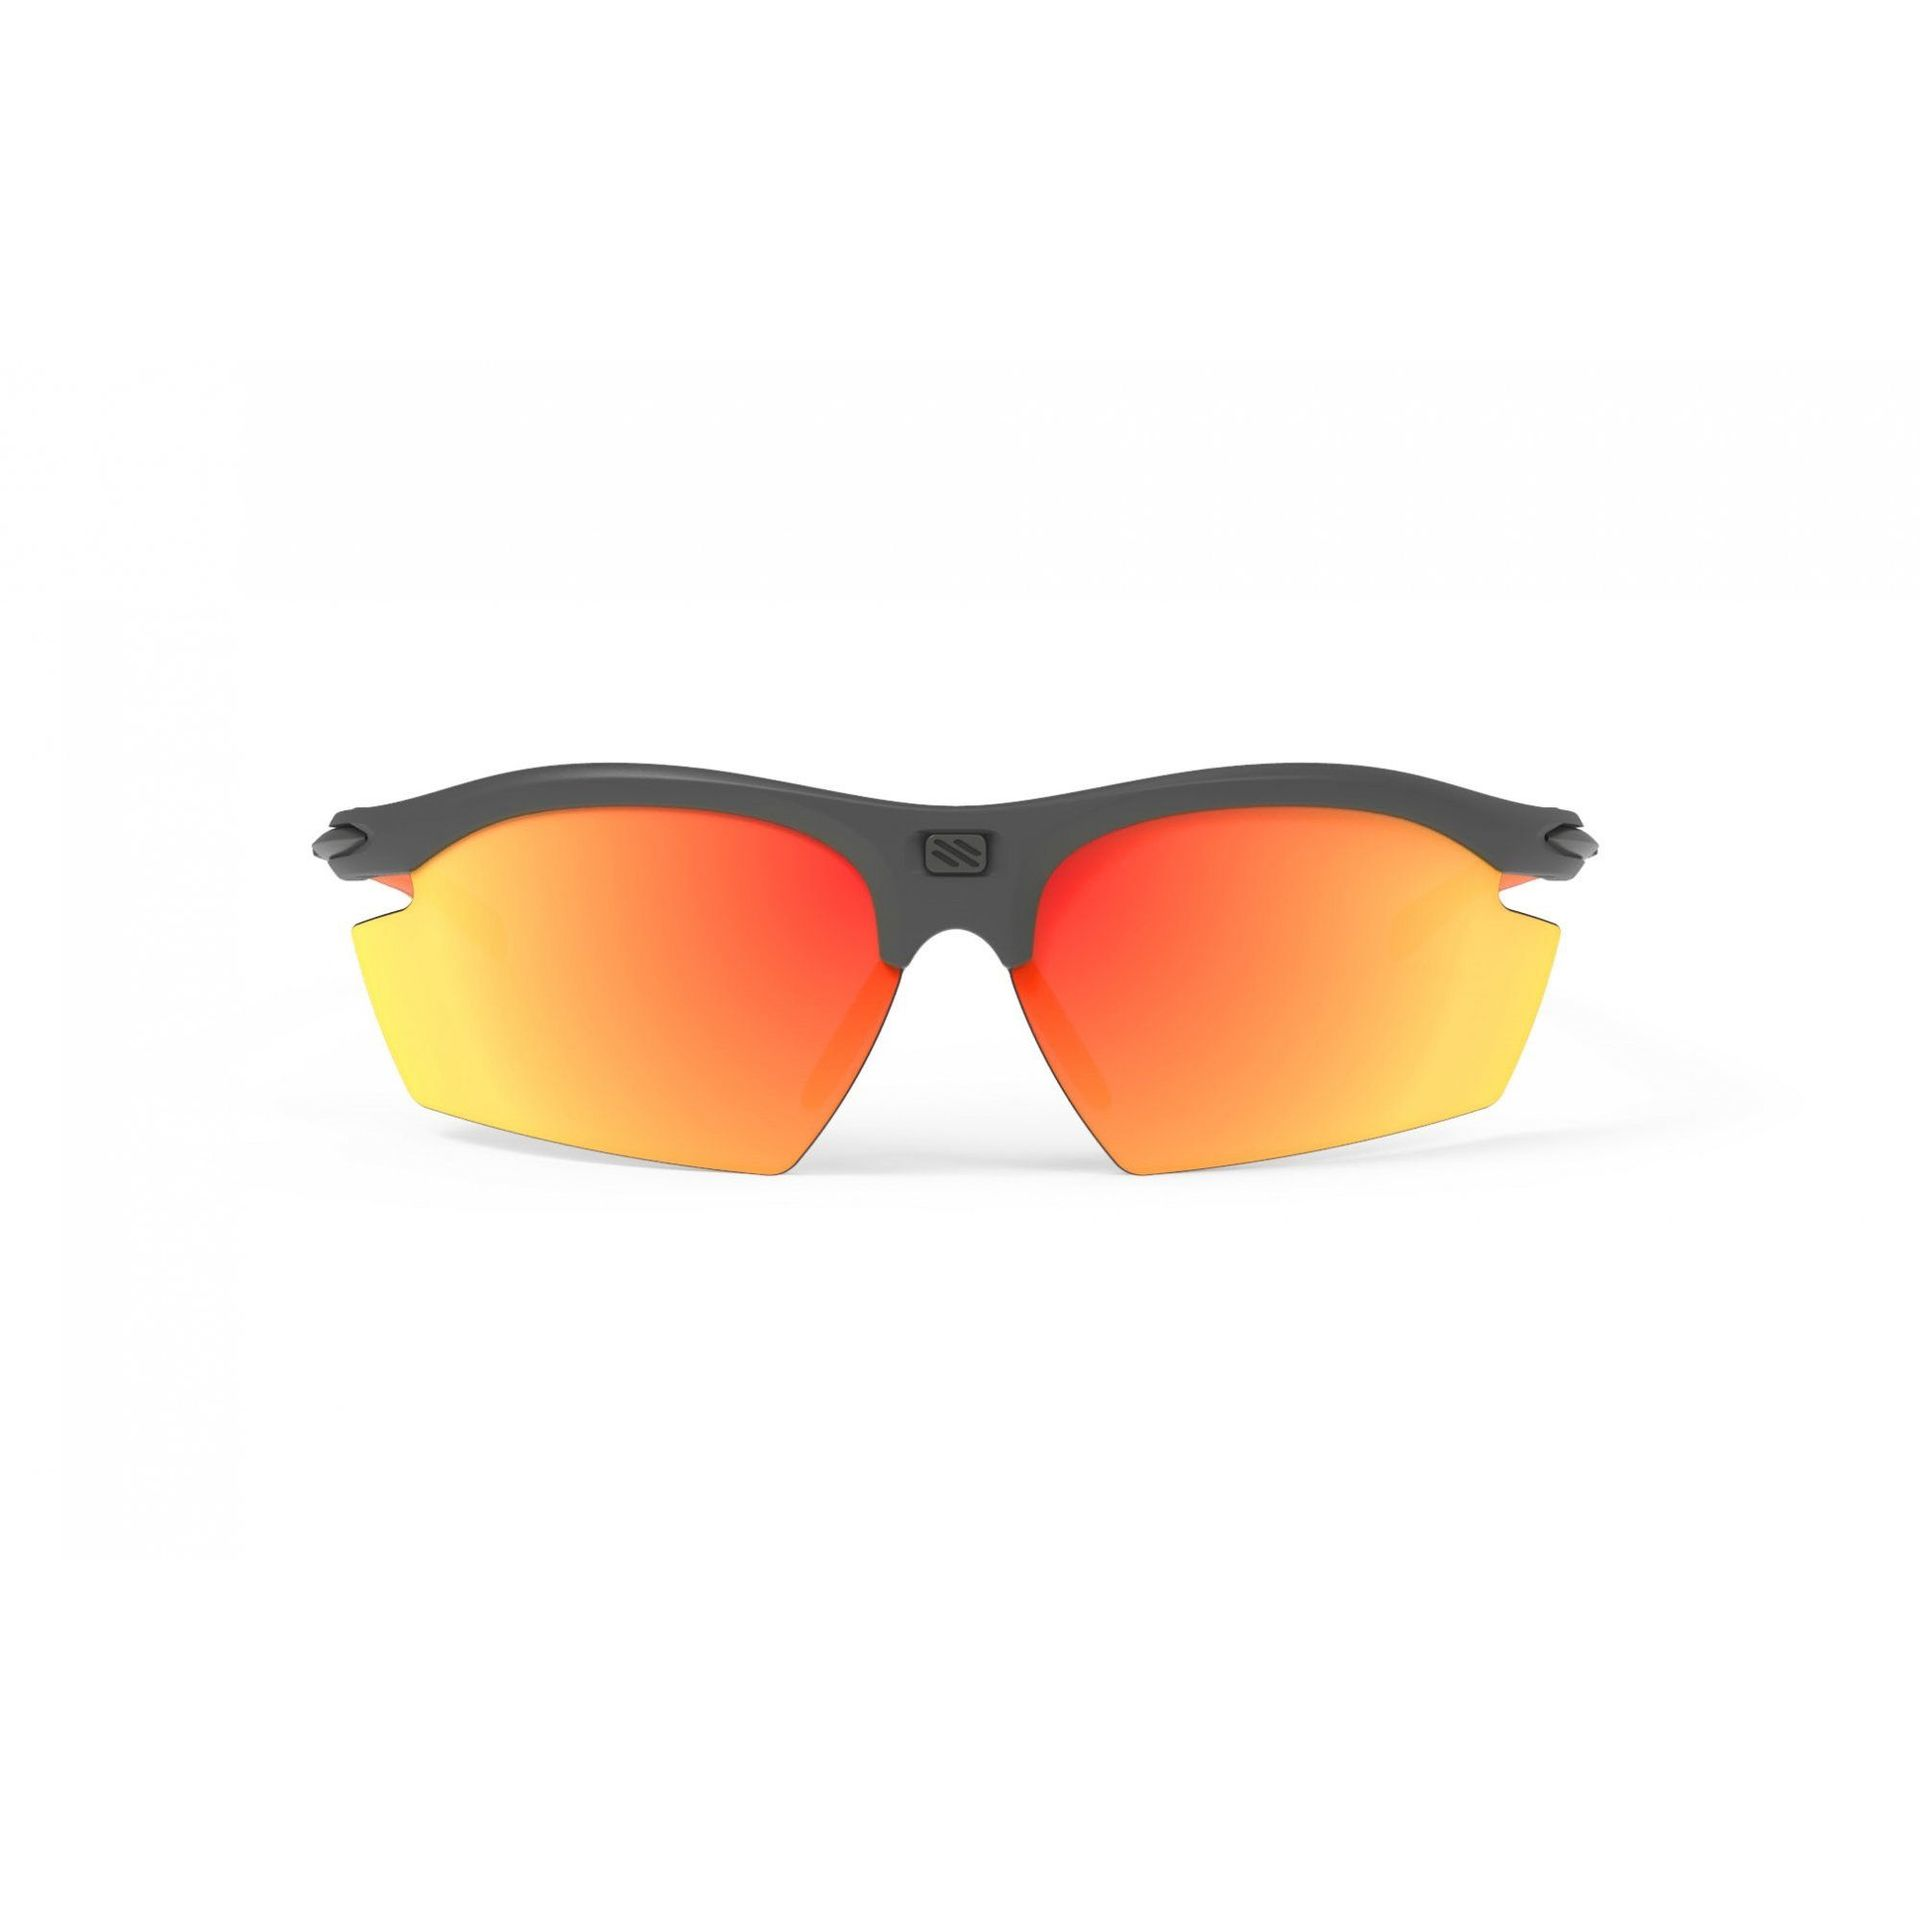 OKULARY RUDY PROJECT RYDON GRAPHITE|ORANGE + ML ORANGE SP534098 2